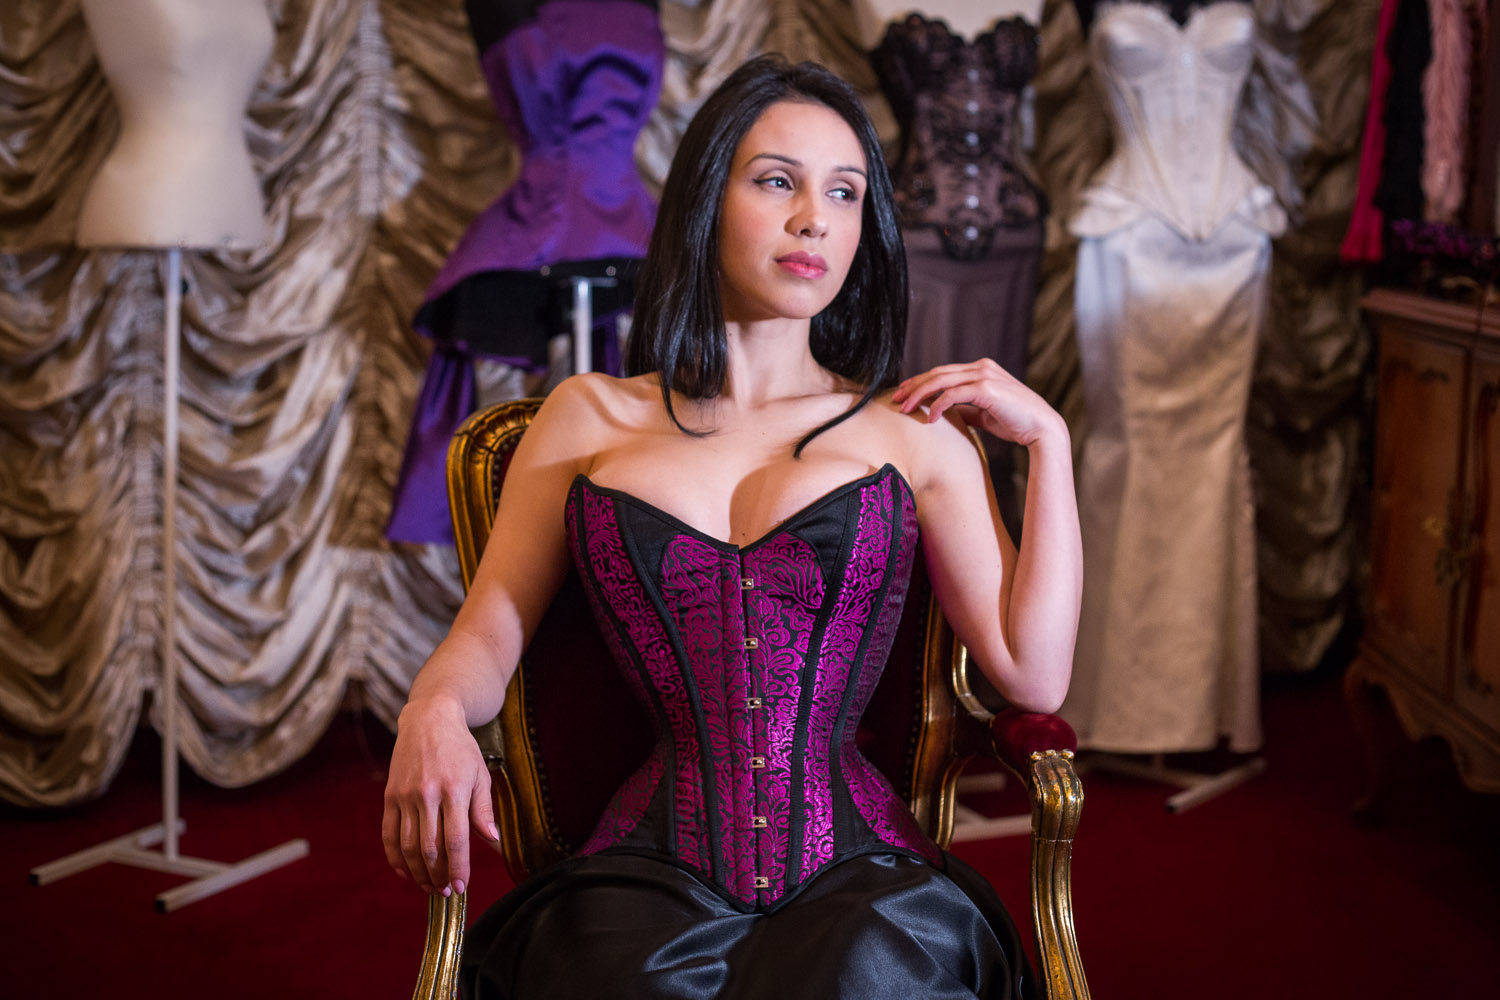 721060142-corsets-madame-sher-256057879